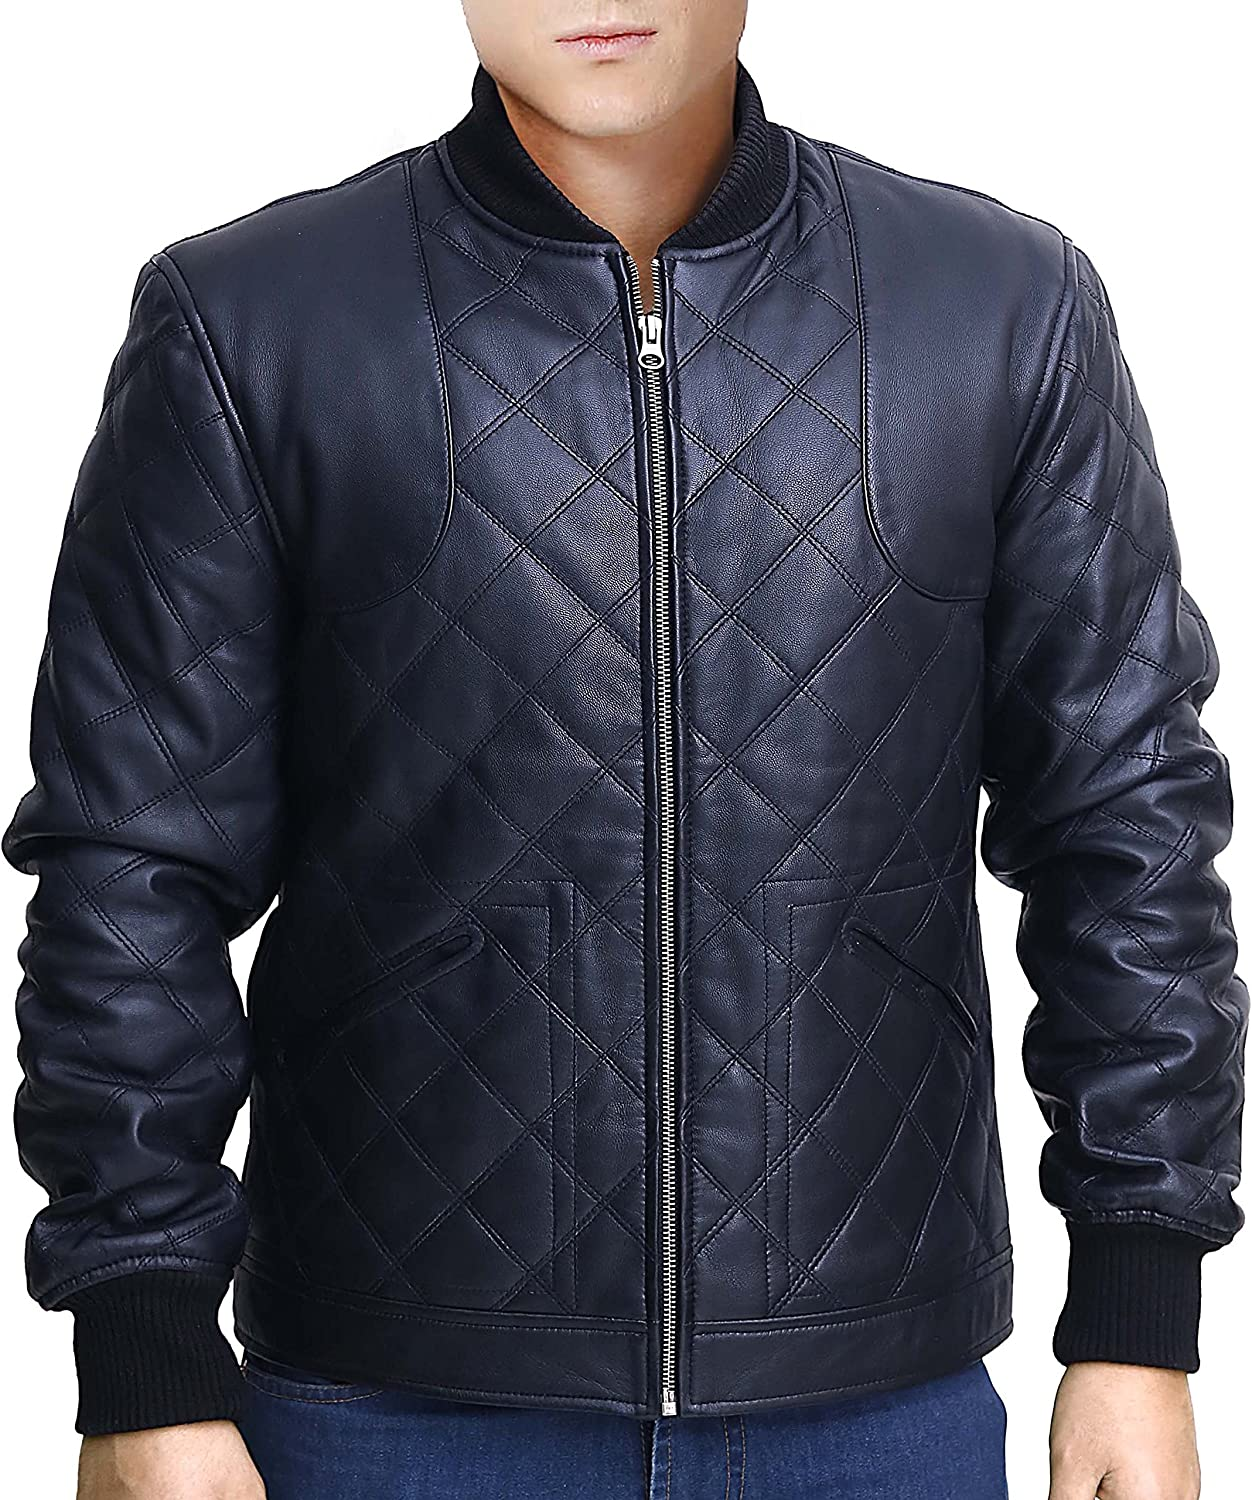 Snazzy David Beckham Full Quilted Black Leather Jacket